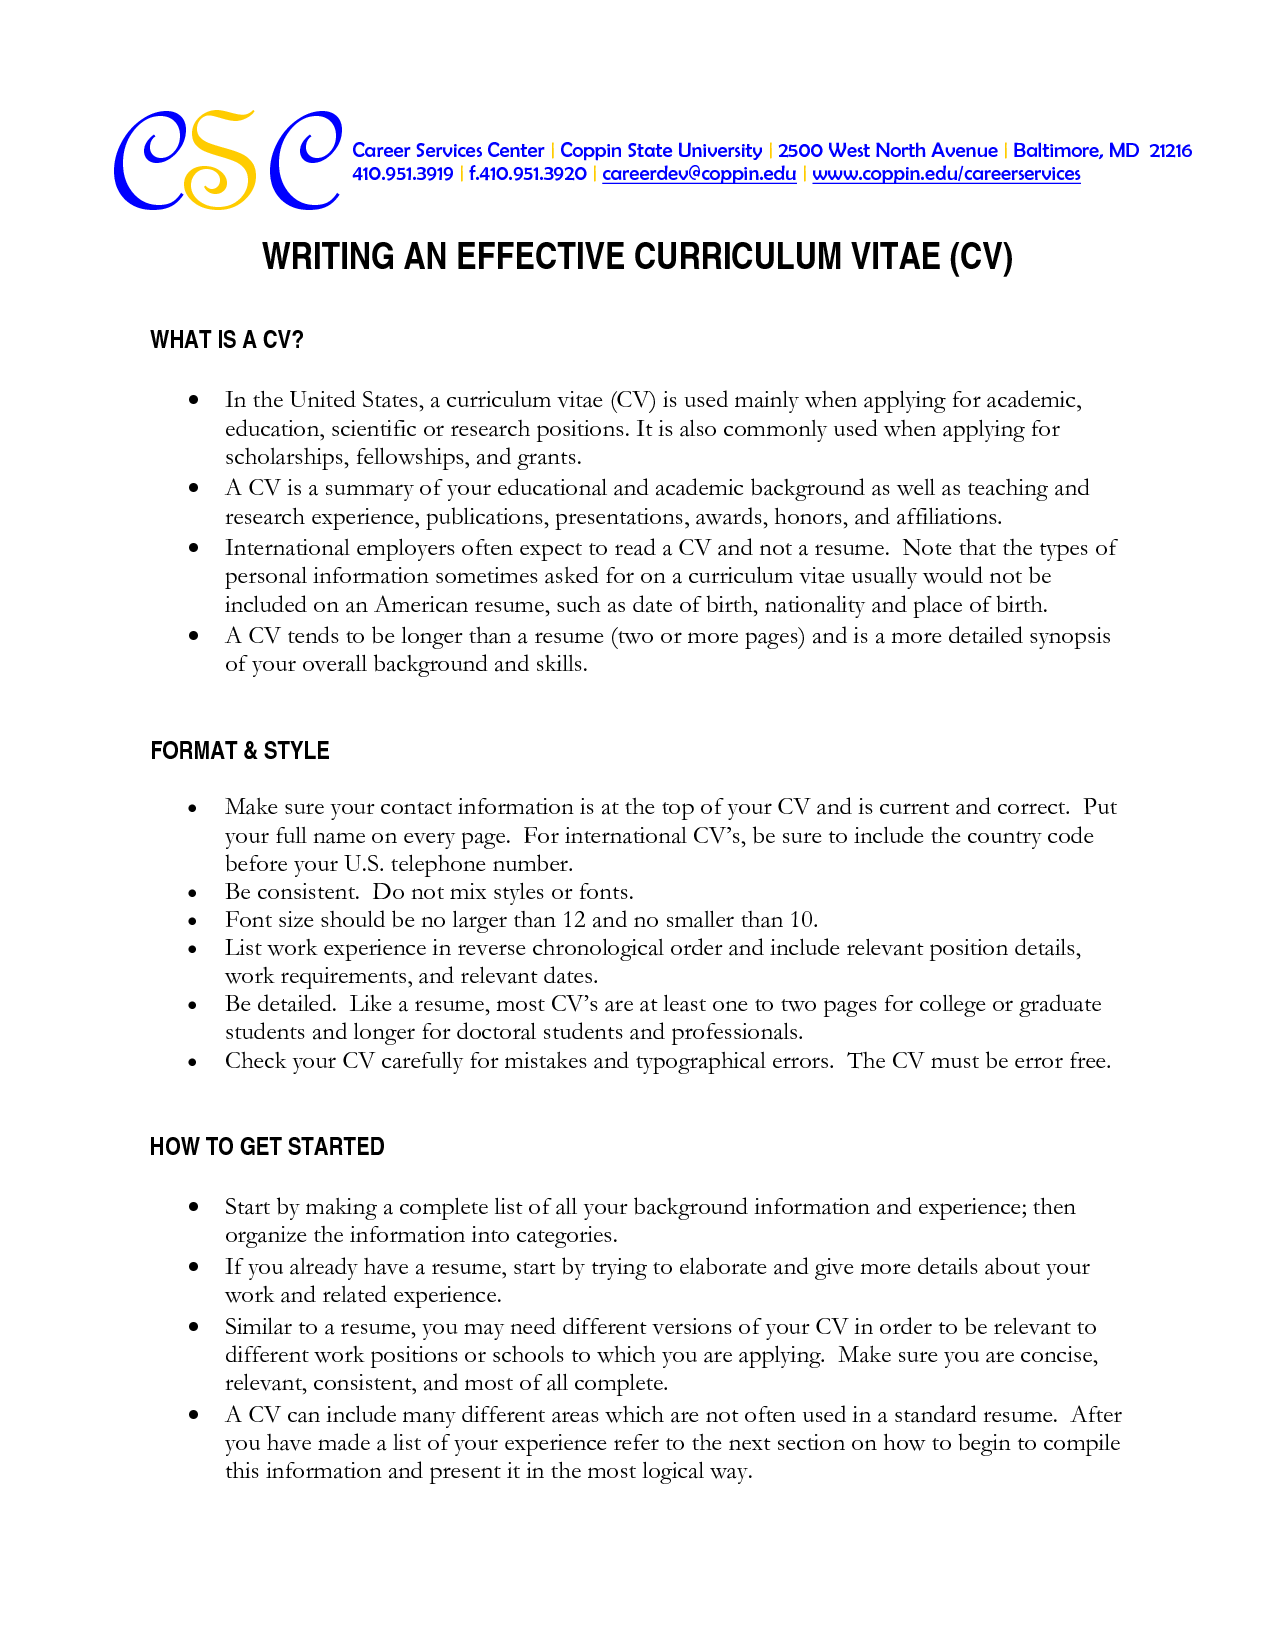 what is a cv word